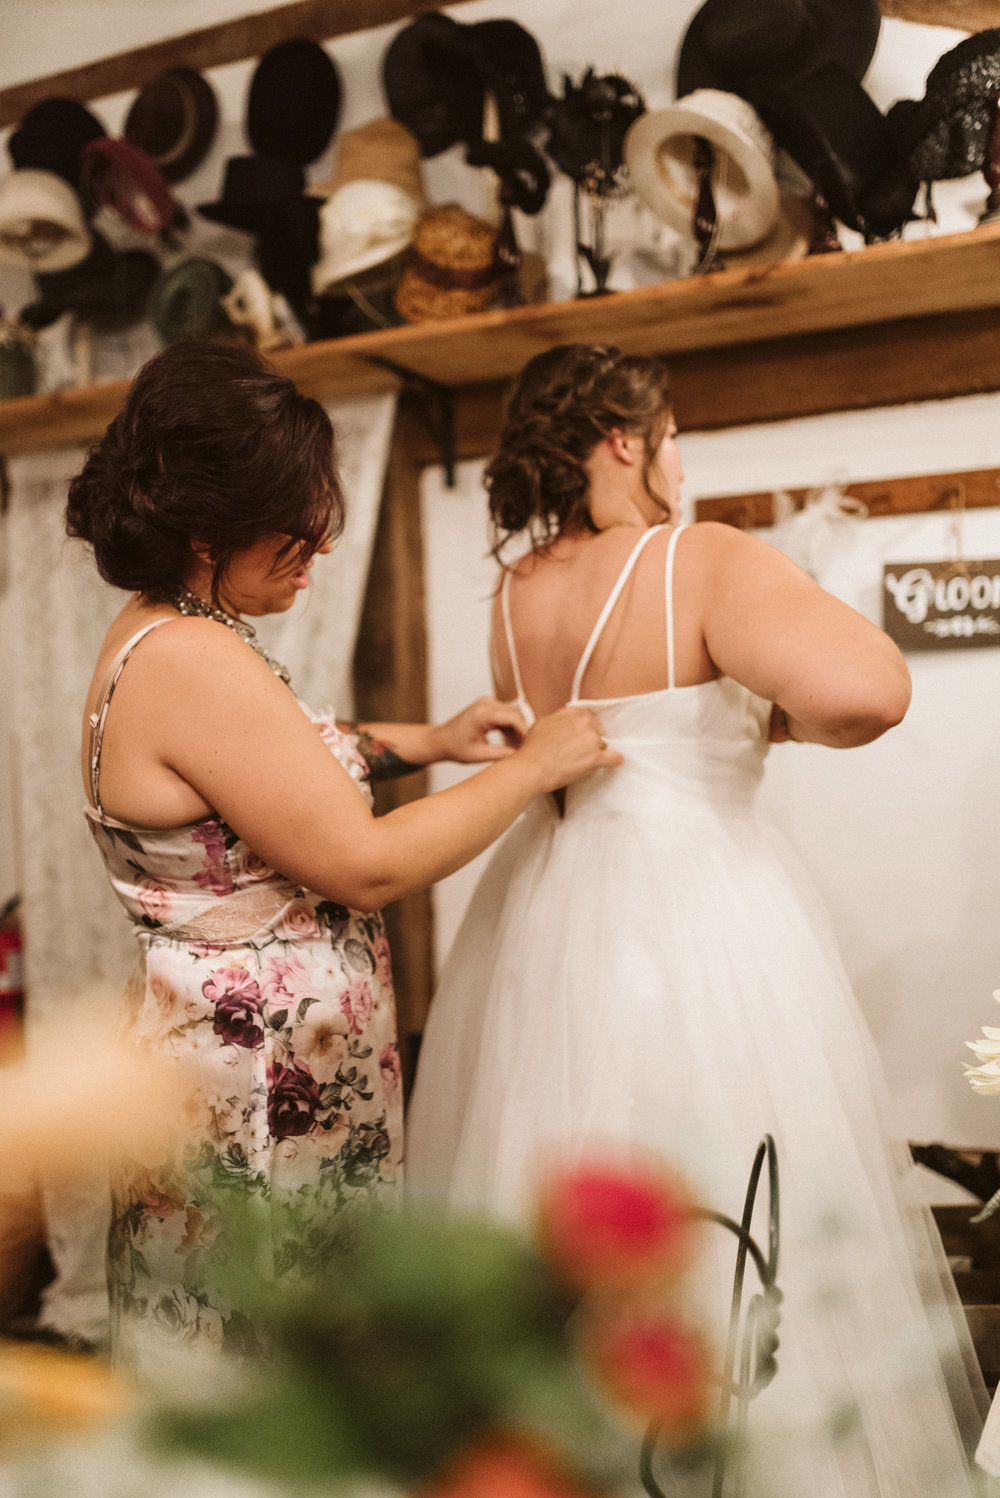 Rocklands Farm, Maryland, Intimate Wedding, Baltimore Wedding Photographer, Sungold Flower Co, Rustic, Romantic, Barn Wedding, Bride Getting Ready Before Ceremony, Tulle Wedding Dress